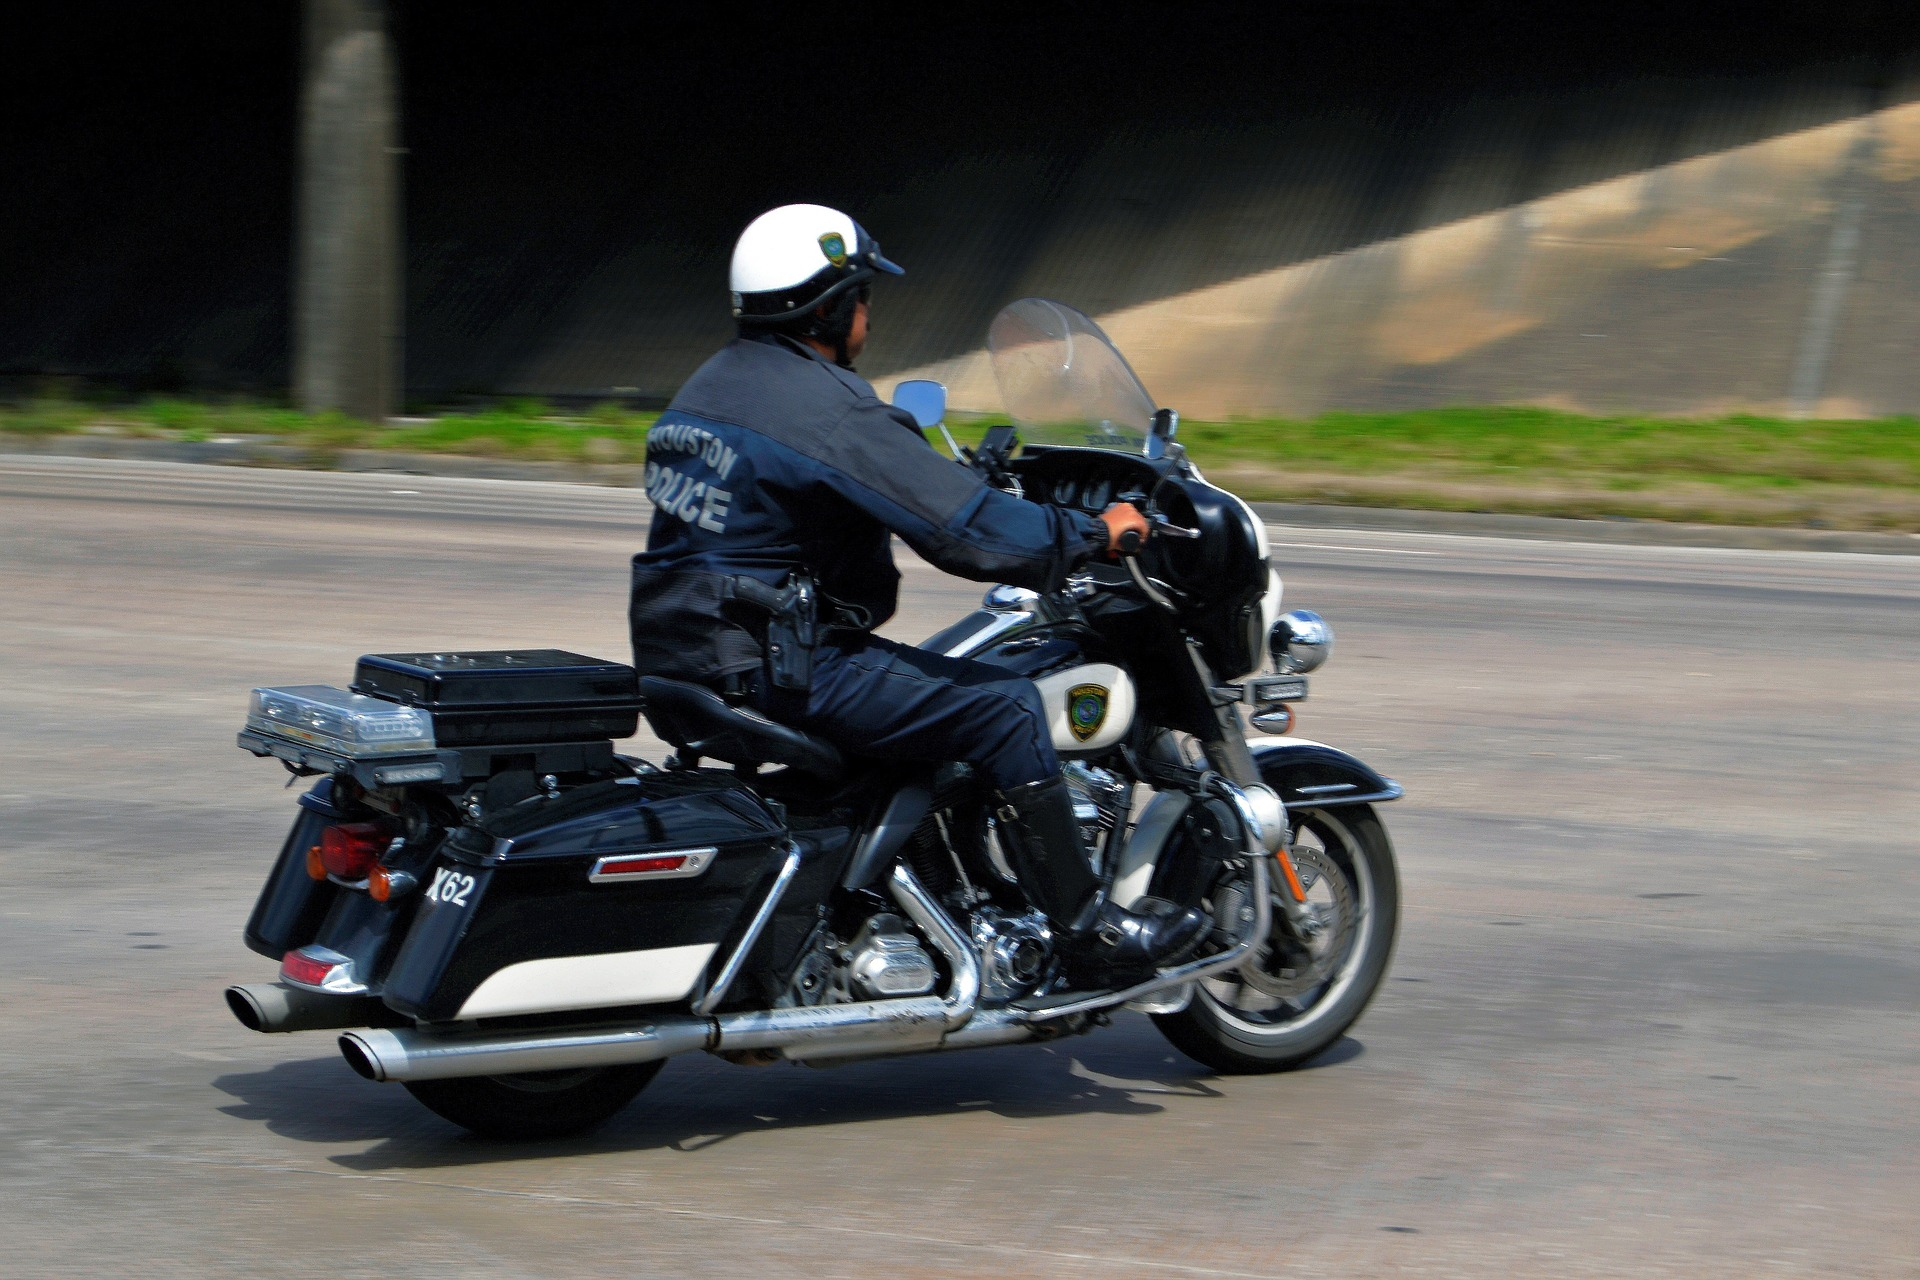 Affordable Motorcycle Insurance, Motorcycle Insurance